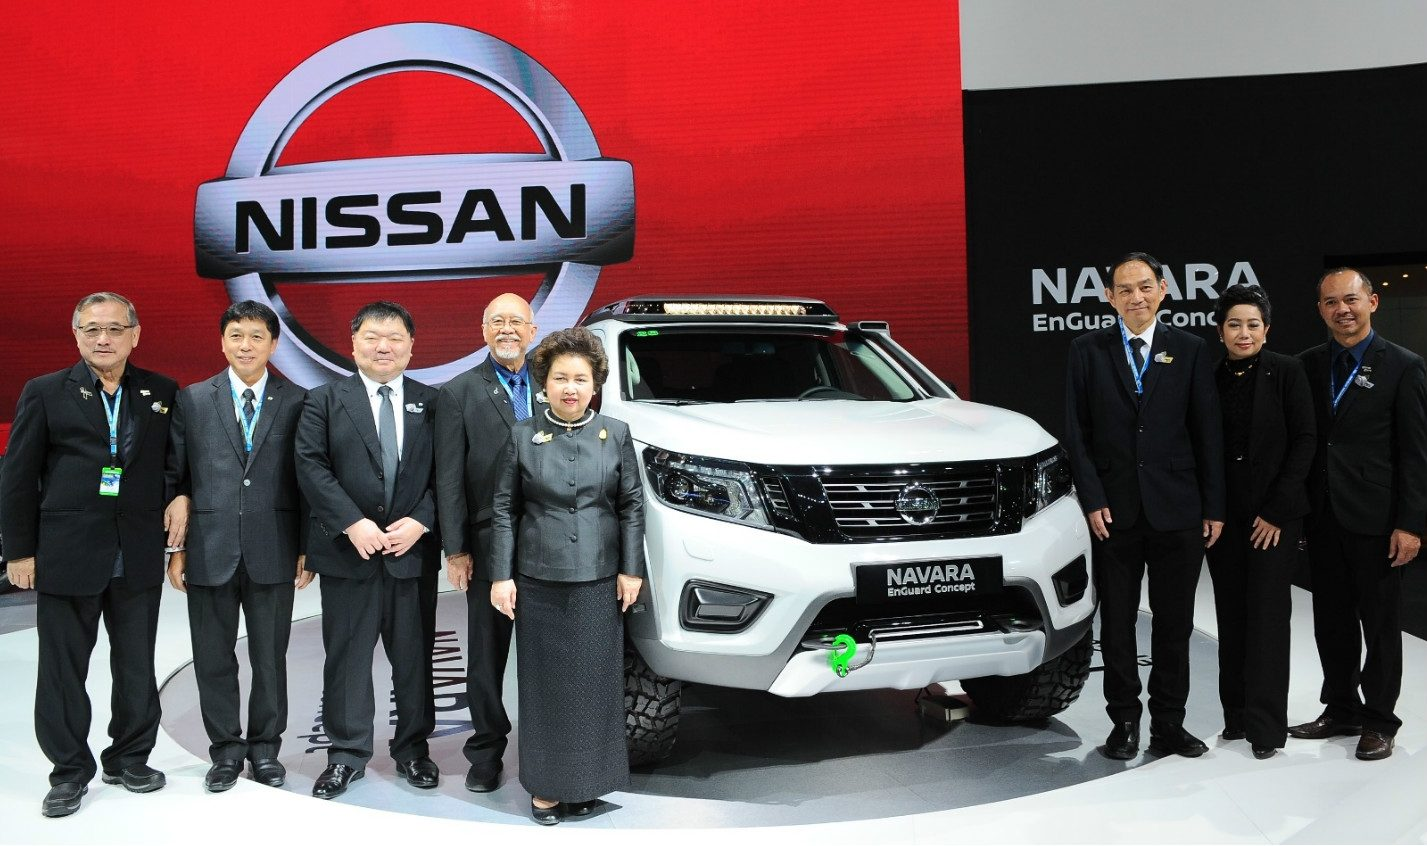 minister-of-industry-visited-nissan